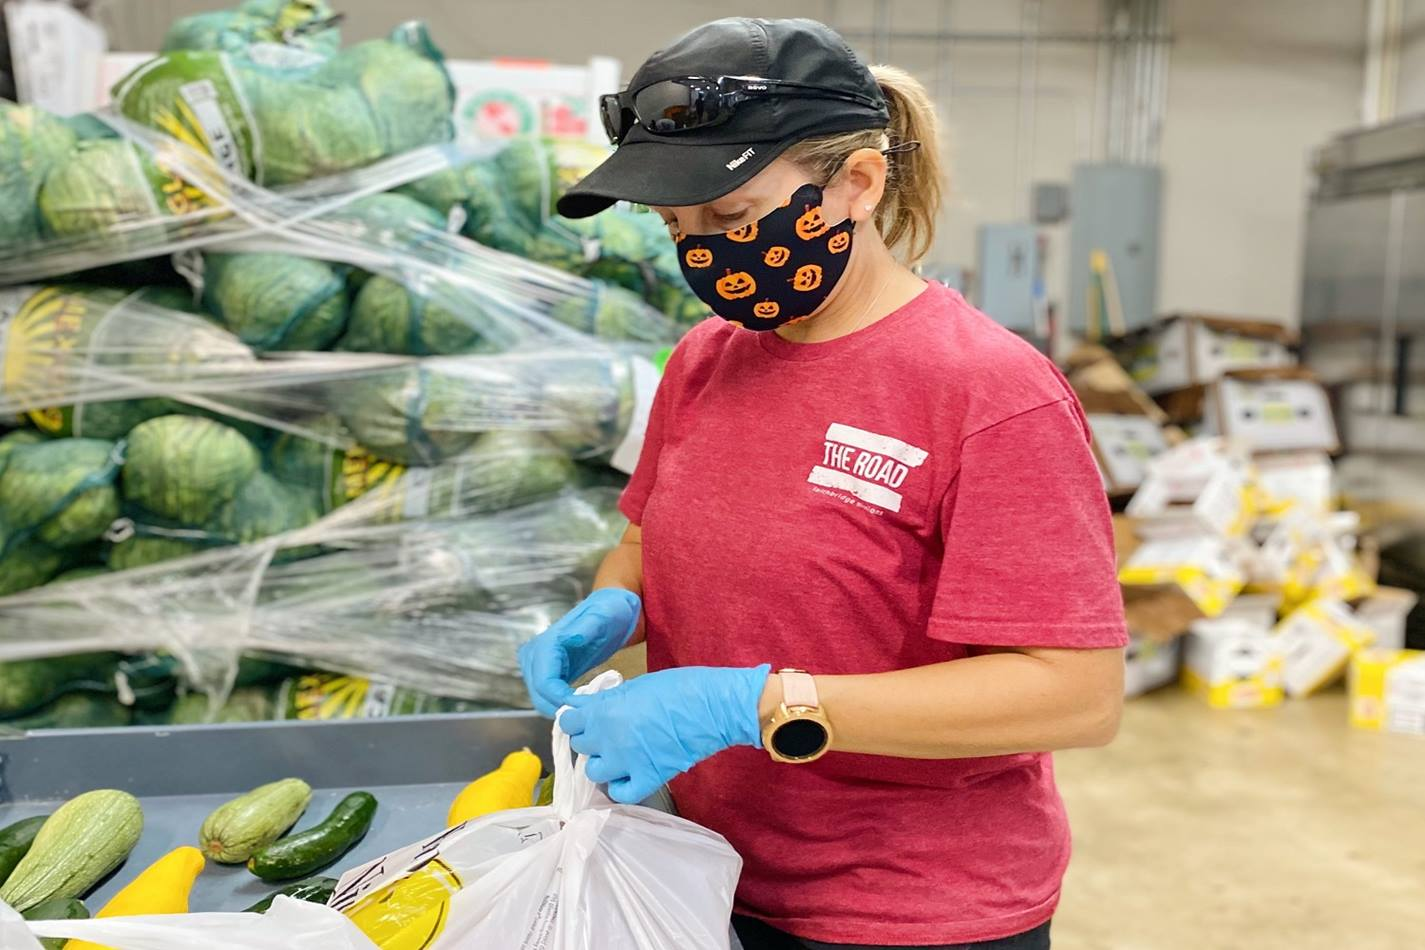 United Methodists, including Christy Sprague (pictured here), volunteer at Bridging For Tomorrow, a Houston community center, helping their neighbors, sometimes as many as 1,000 per week, receive food during the uncertainty of the pandemic.  Photo courtesy of Hannah Connor, Bridging For Tomorrow.